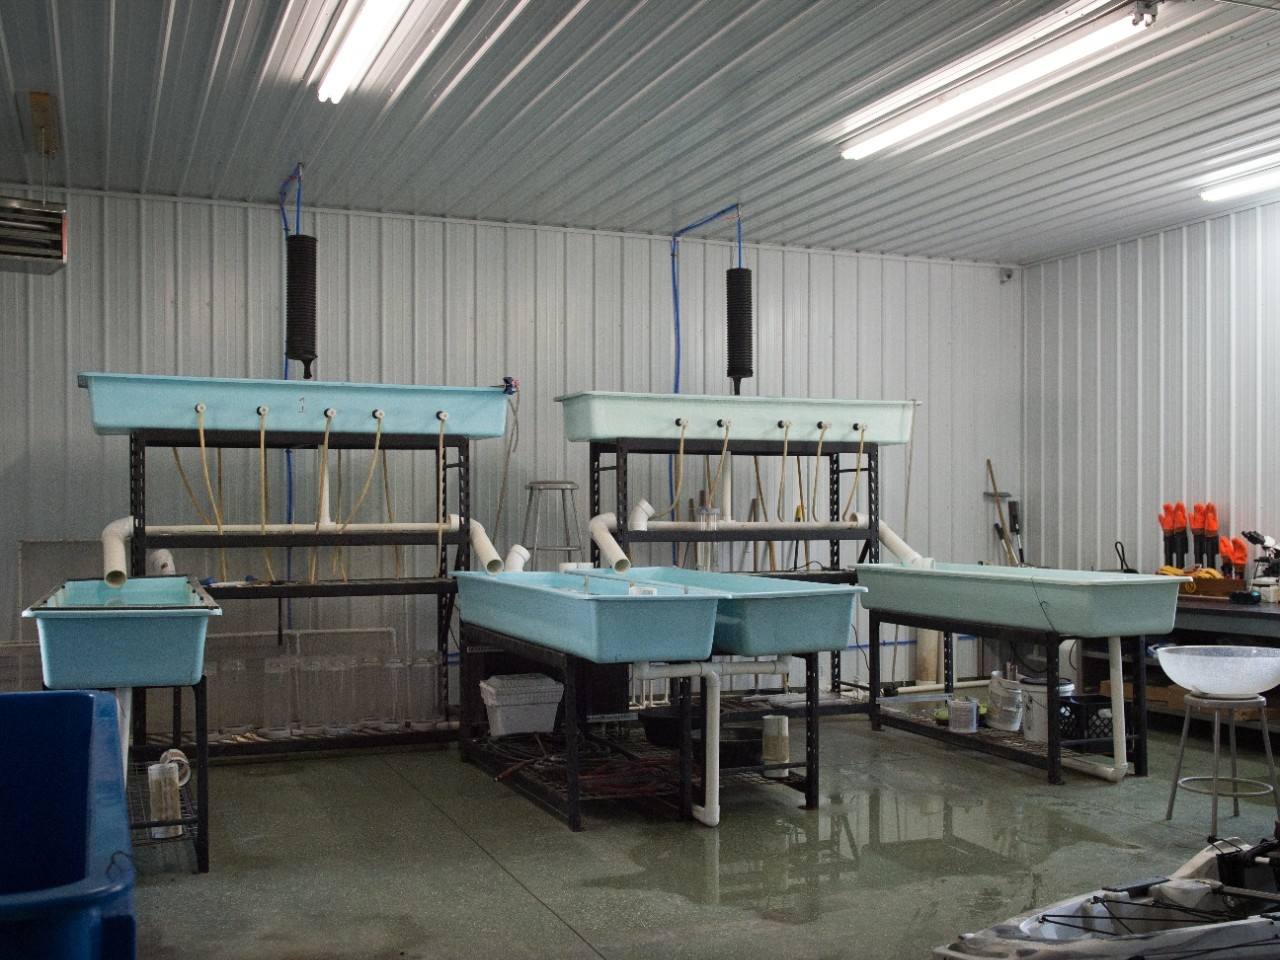 The interior of a salmon hatchery.